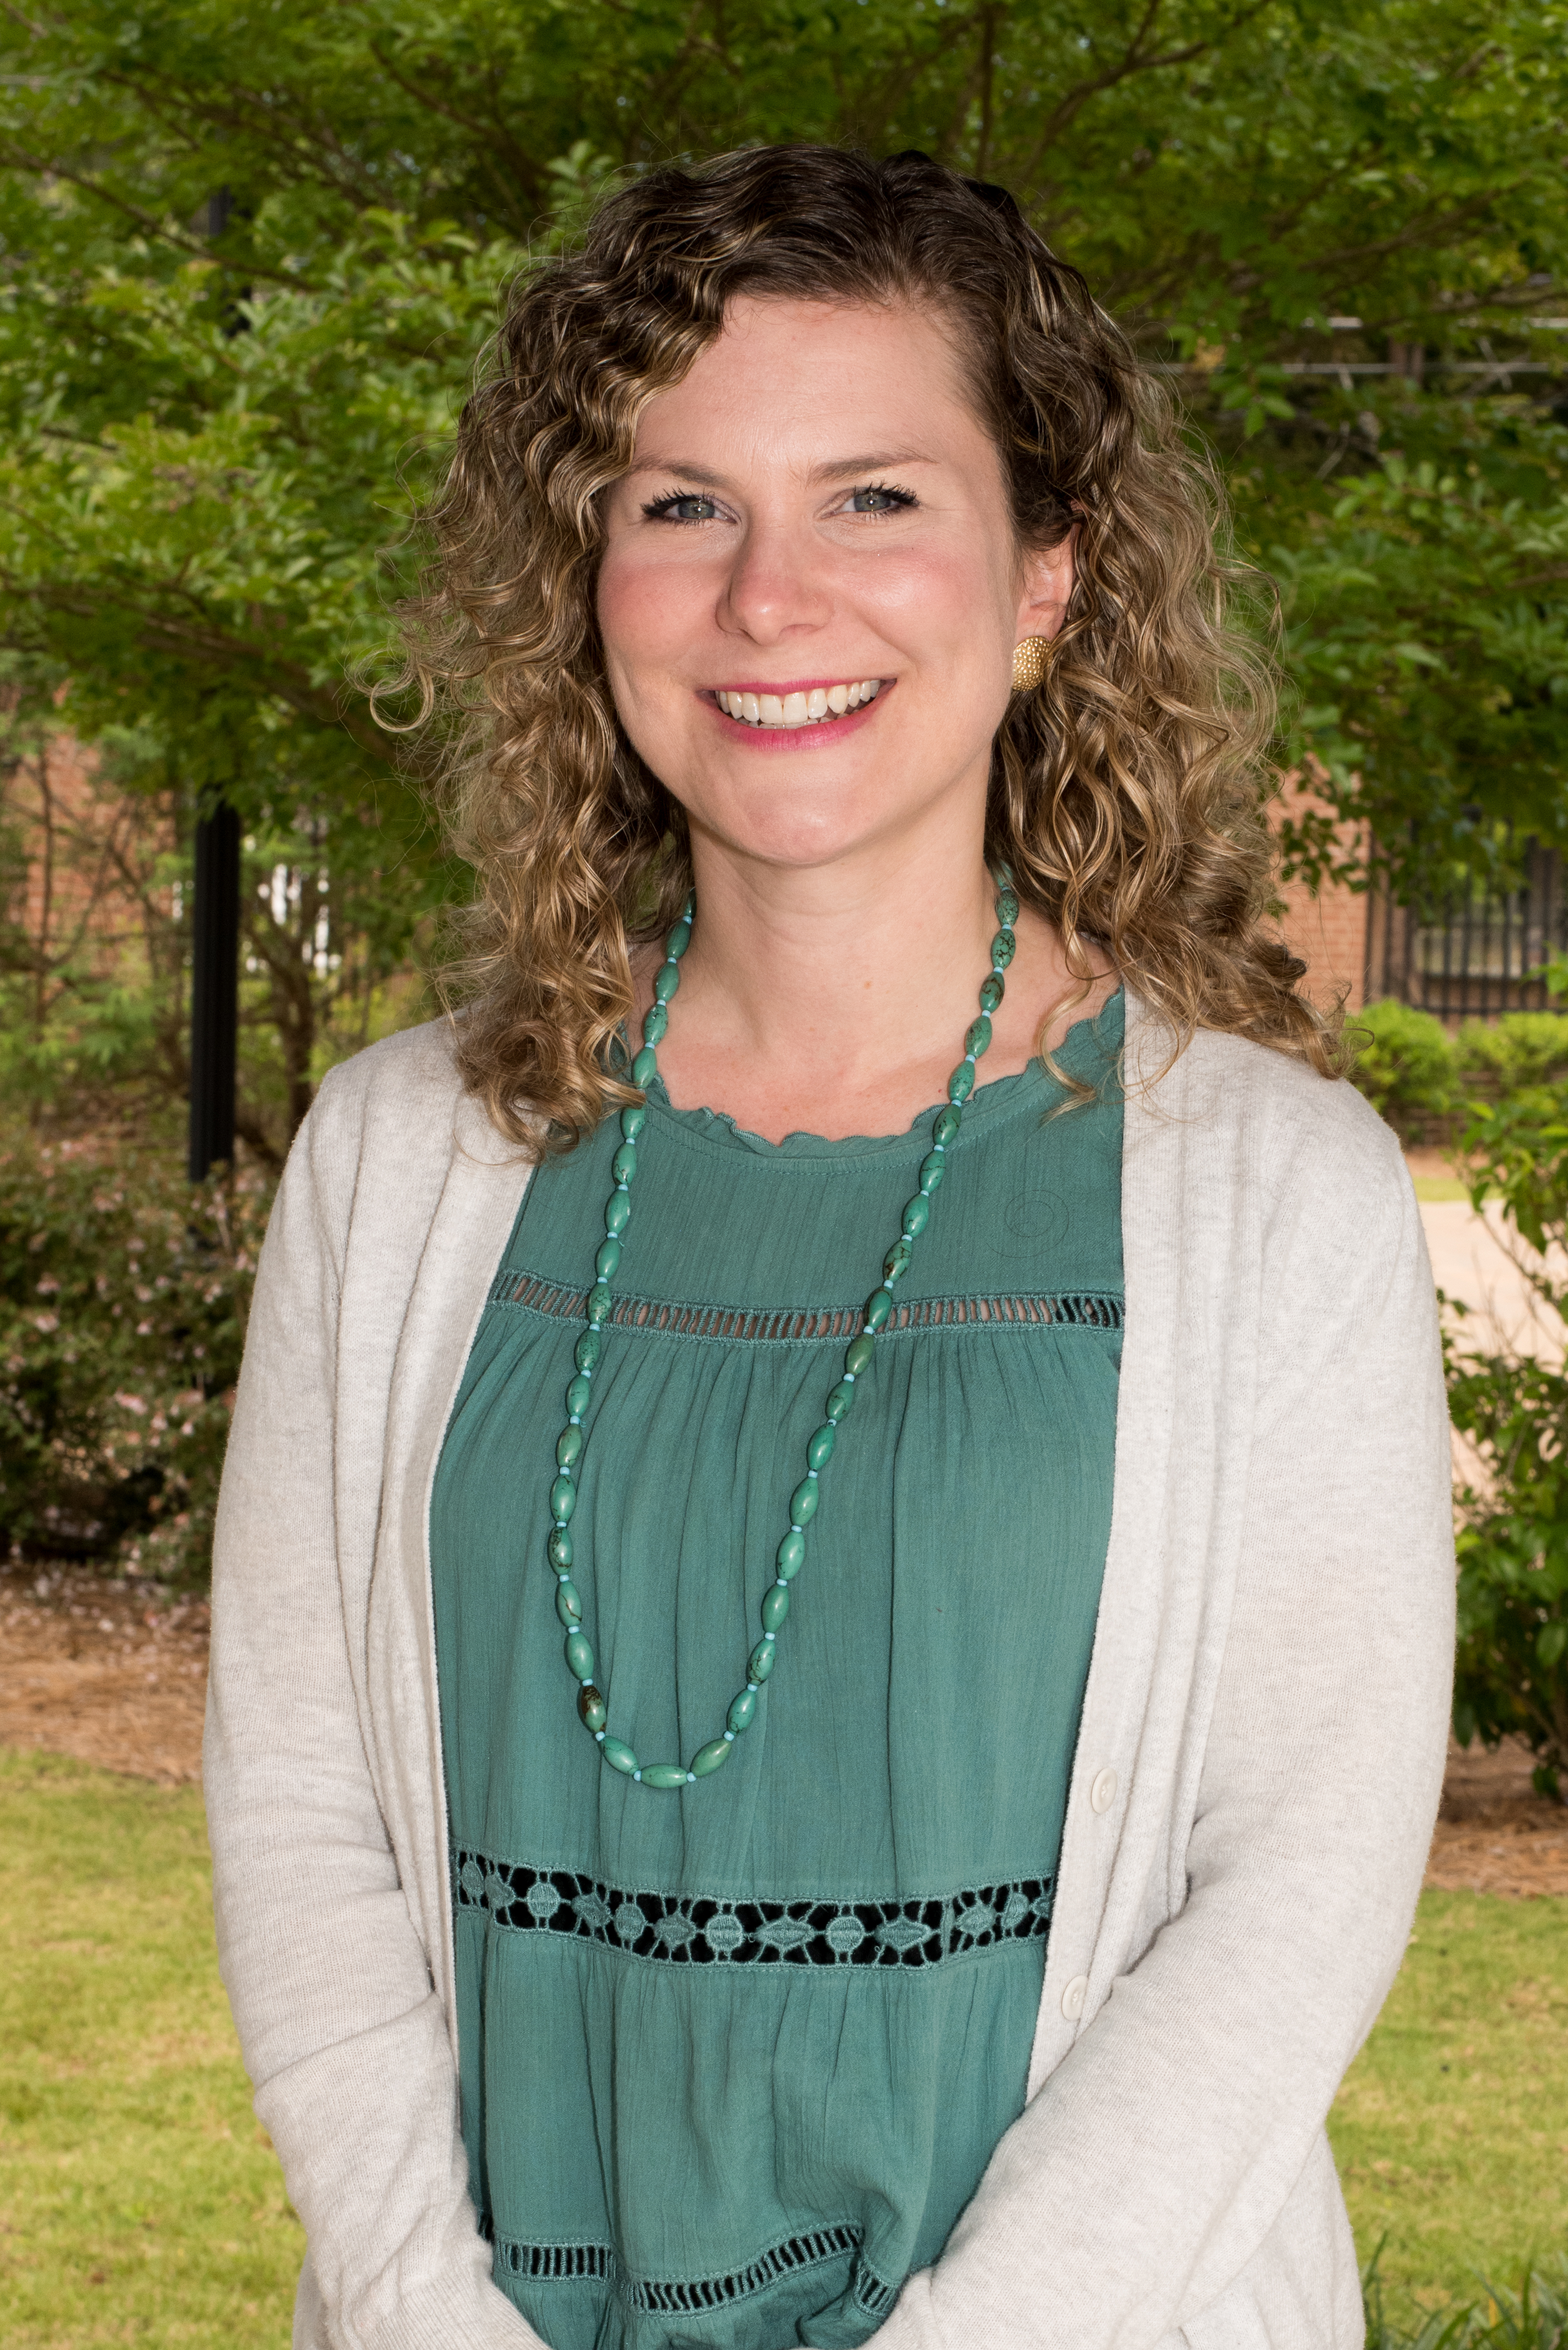 Laura Beth Peterson, MS, LPC